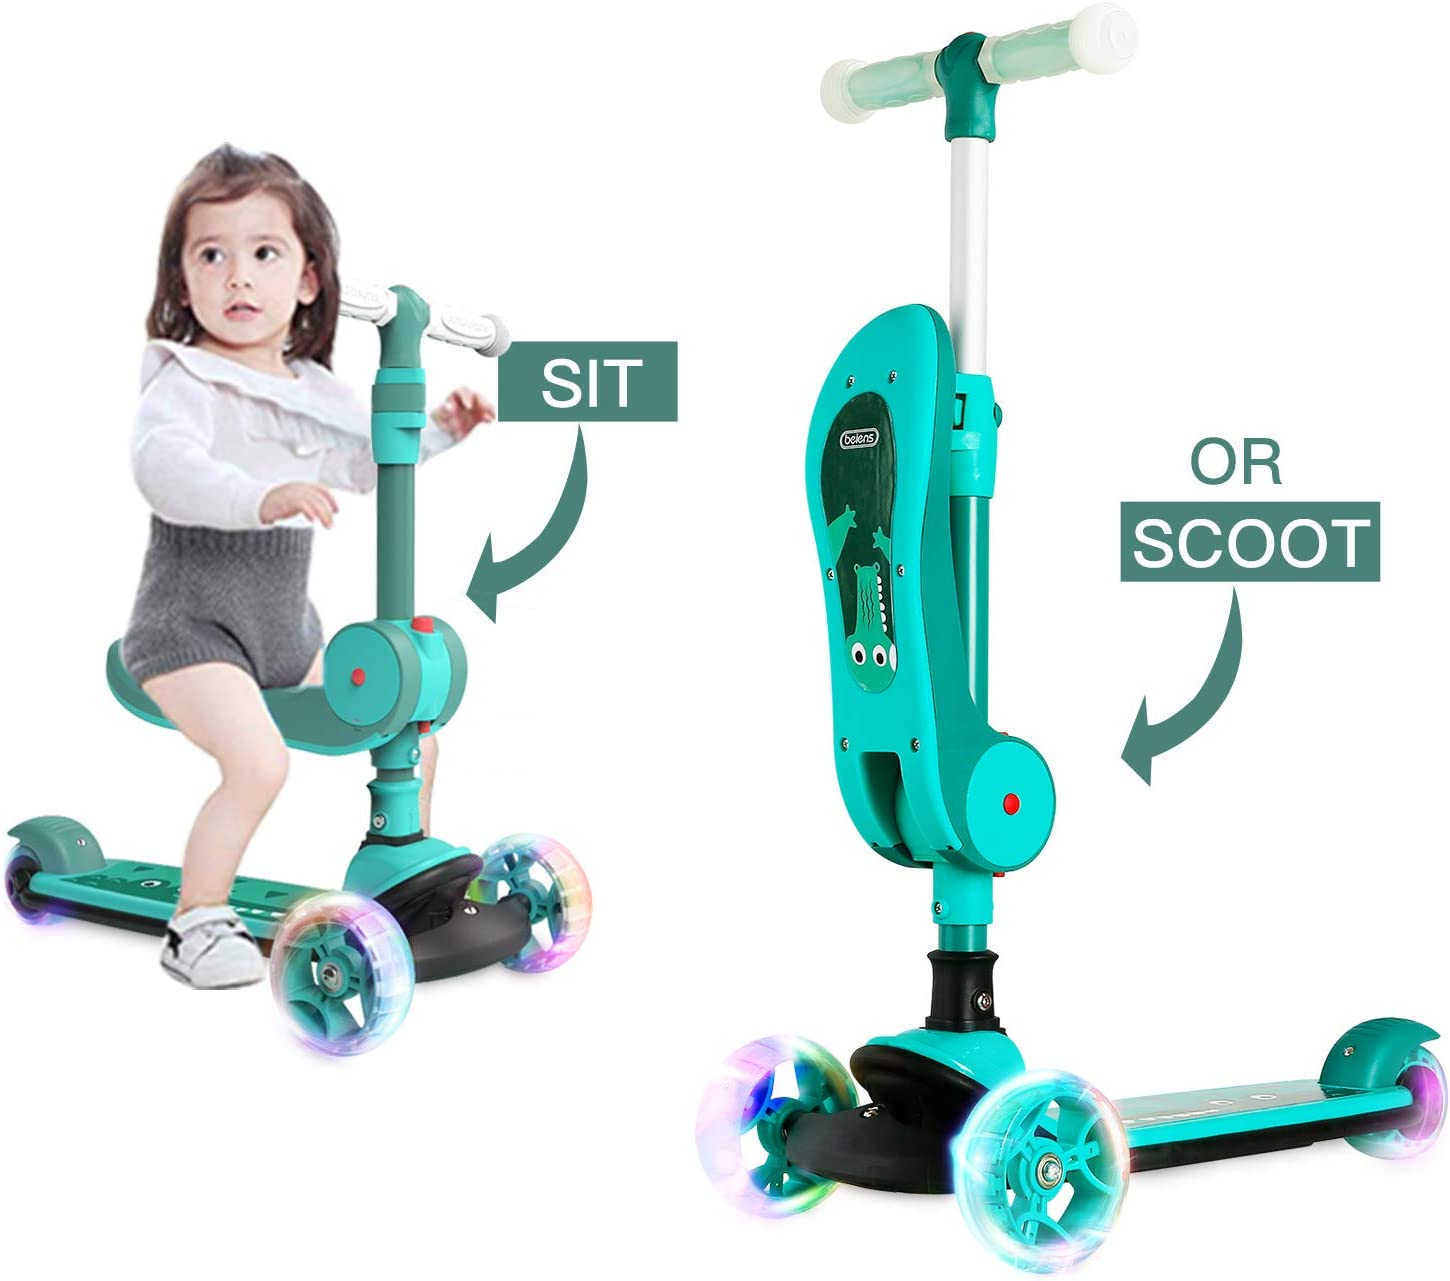 2-in-1 Kick Scooter for Kids, 3 Flashing Wheels Folding Seat with 4 Adjustable Height, Durable Aluminum Frame and Wide Deck, Lean to Steer Kick Scooter Gift for Boys Girls Toddlers 2-14 Years Old